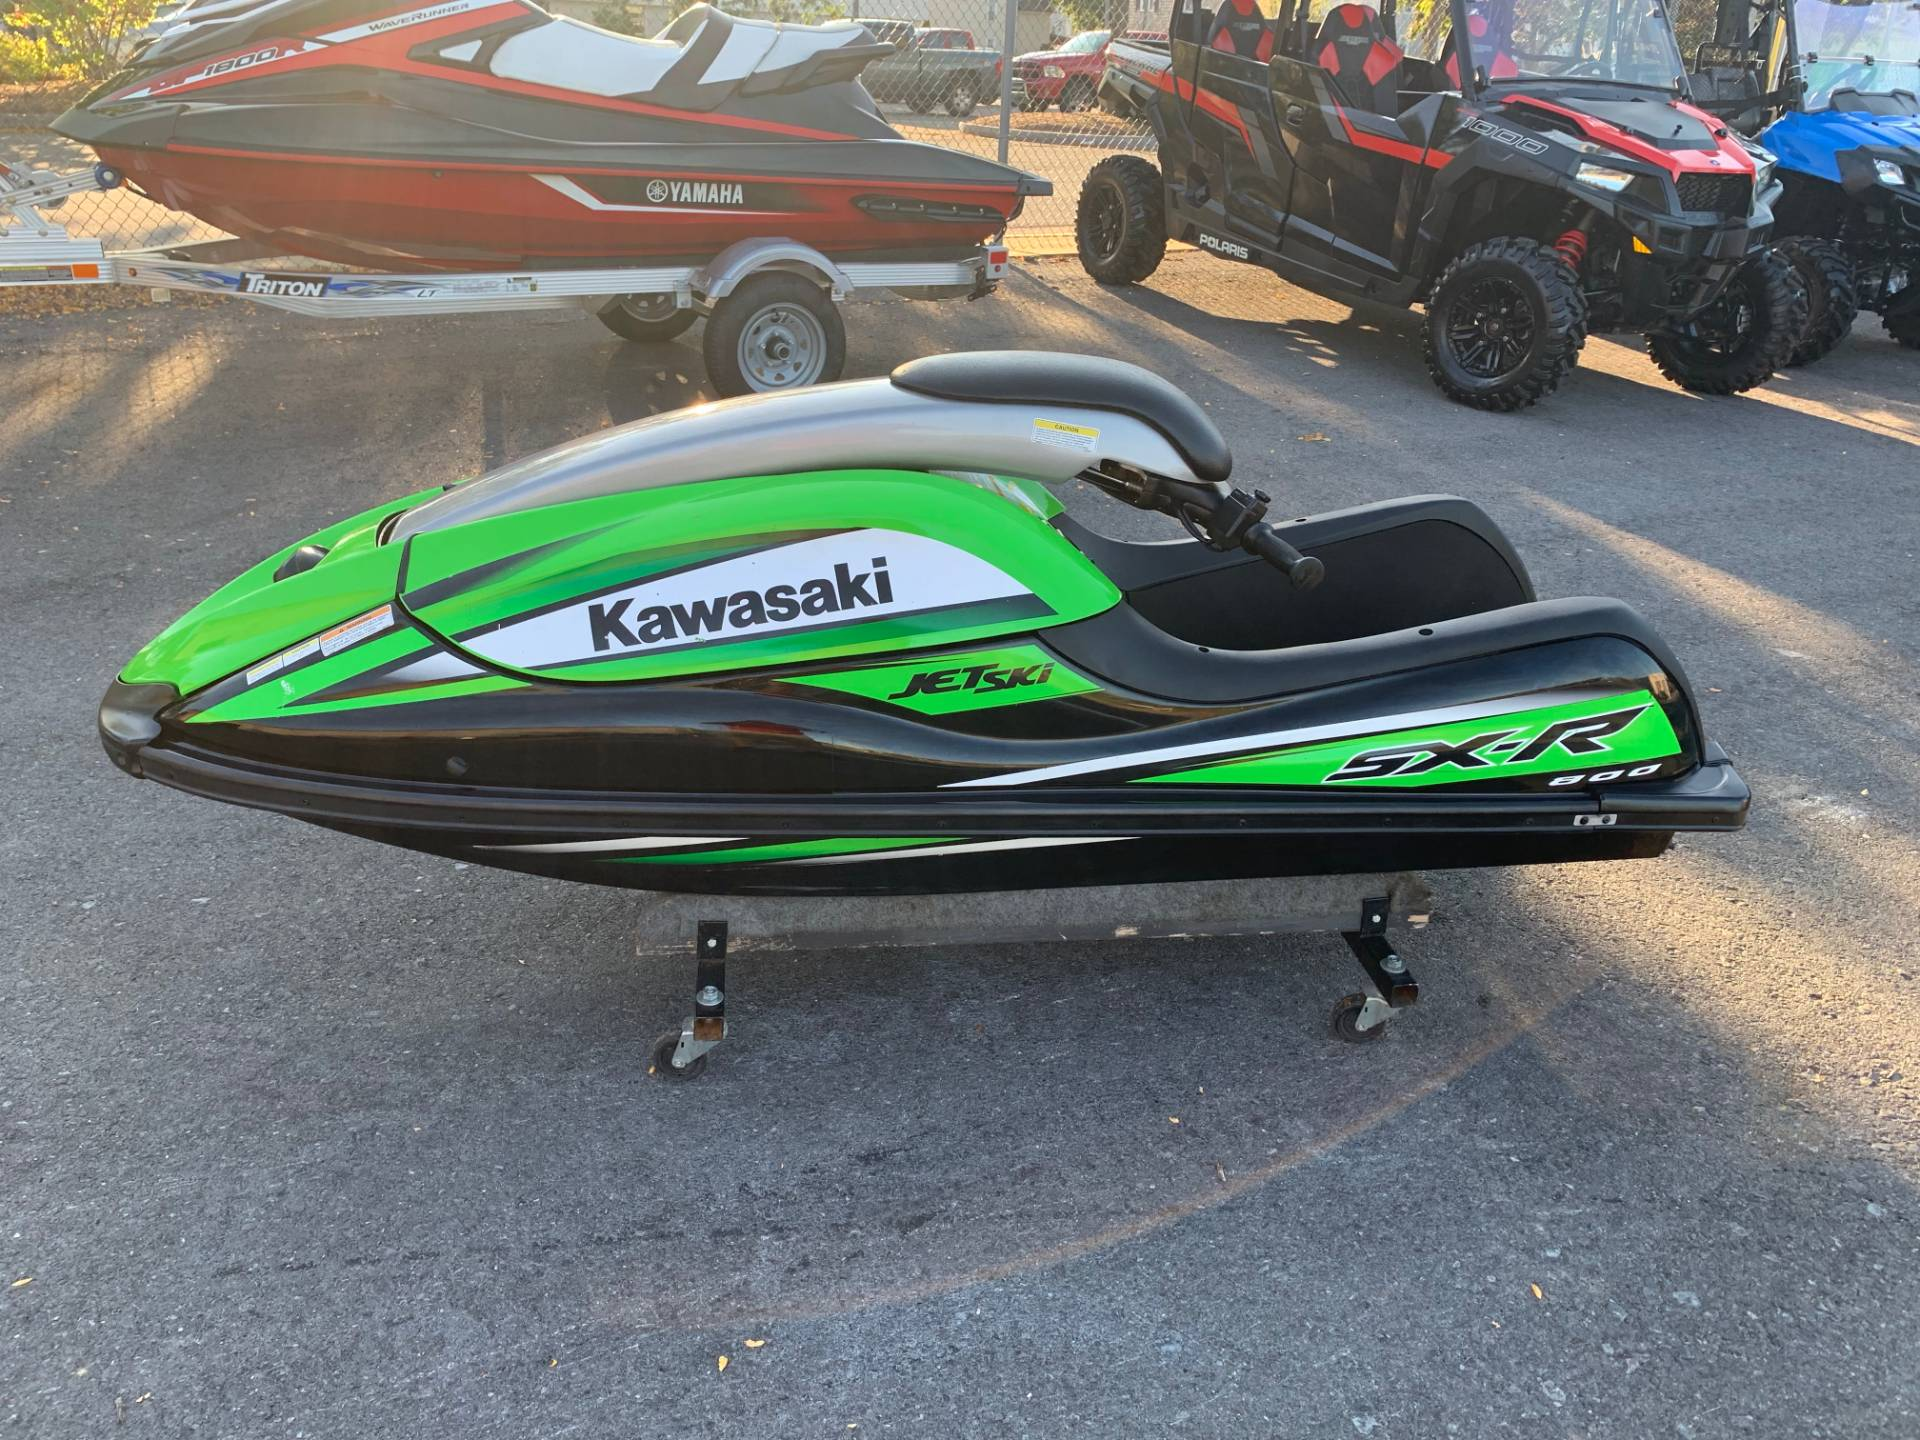 2010 Kawasaki Jet Ski® 800 SX-R™ in Herkimer, New York - Photo 1